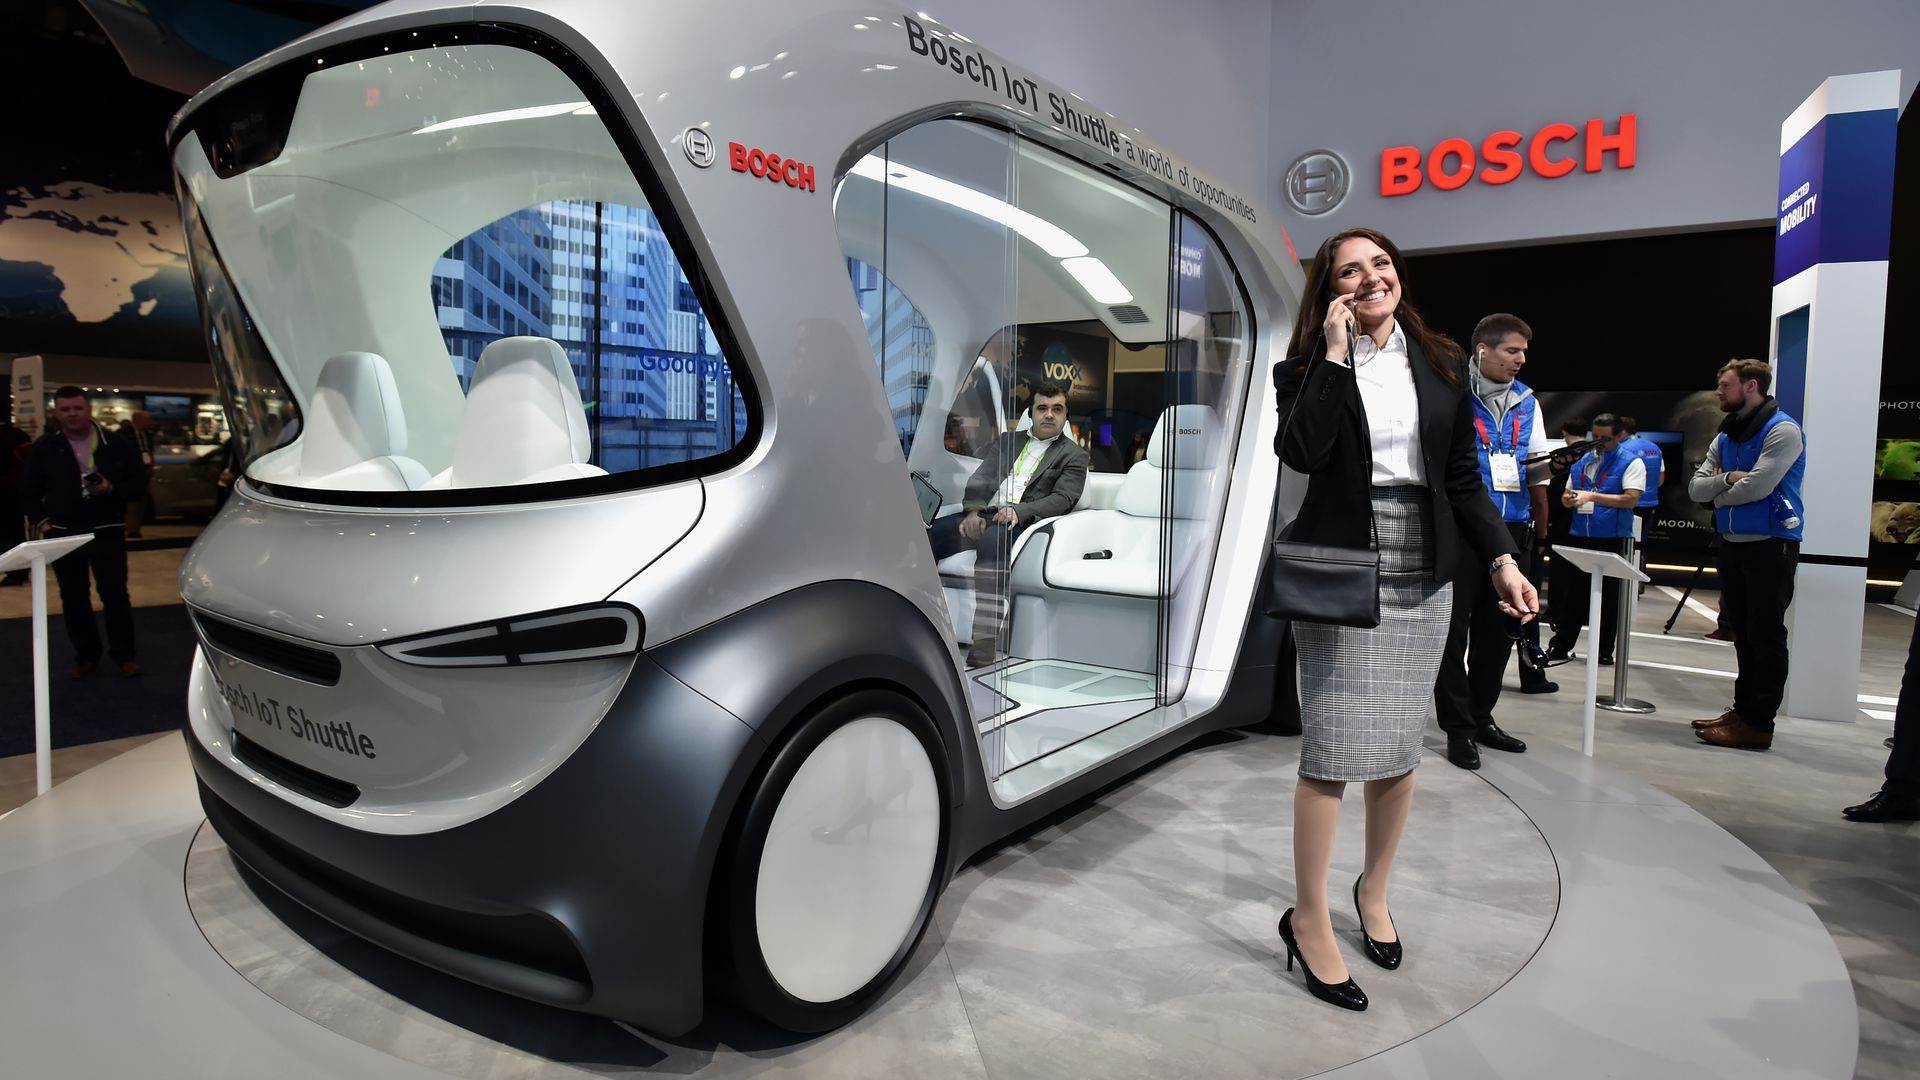 A woman stands near a Bosch automatous shuttle on display at CES